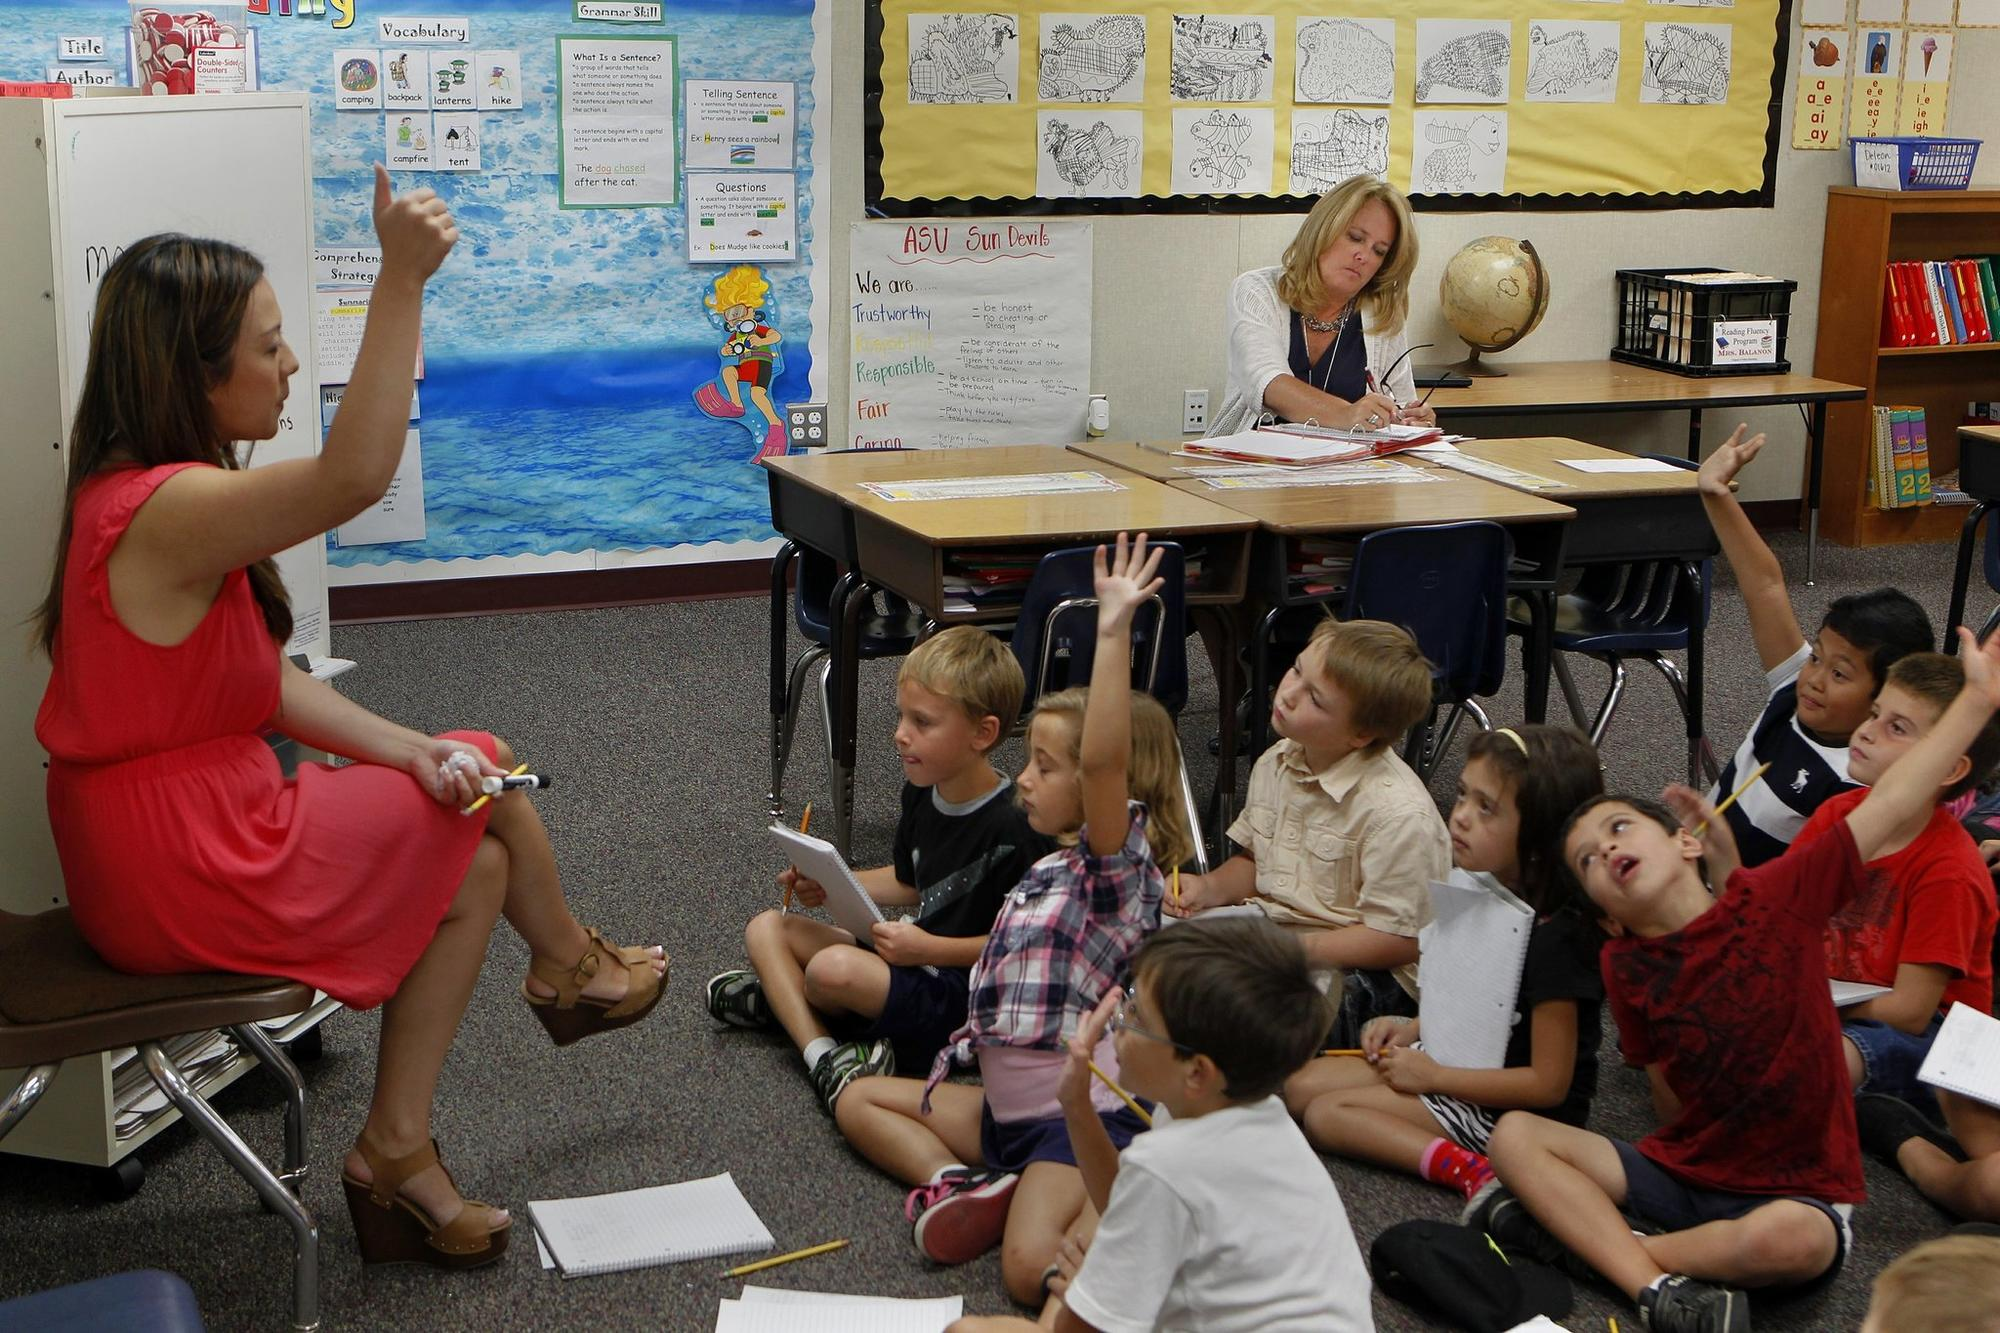 Teacher consultant Michele Manos (right) evaluates Kimberley De Leon's (left) 2nd grade class on Monday at Valley Elementary School in Poway, California.